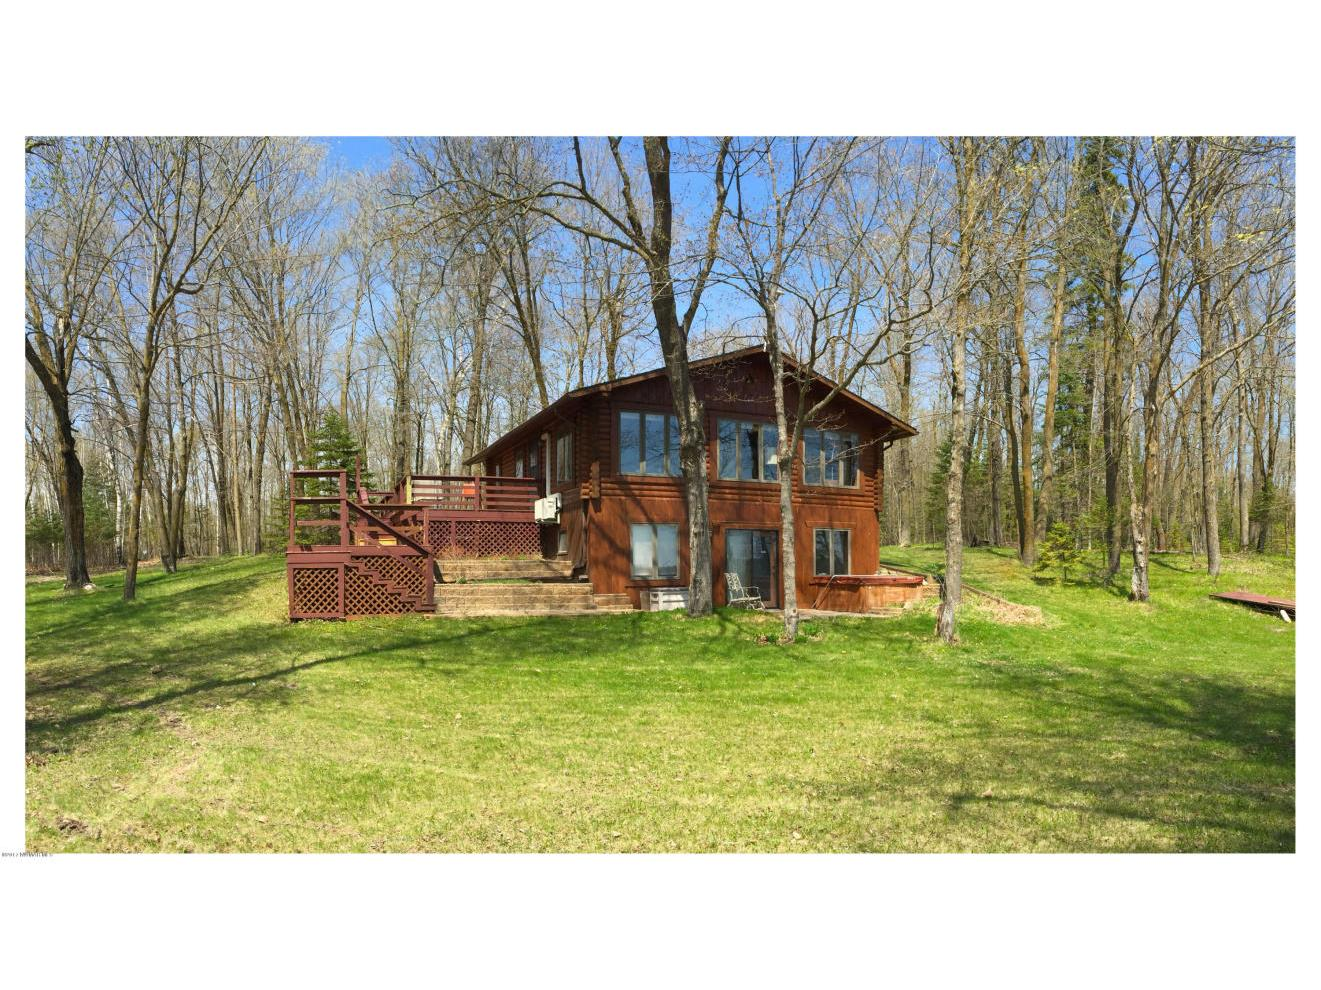 tenstrike singles See details for 23845 hagali road ne, tenstrike, mn, 56683, single family, 2 bed, 1 bath, 1,280 sq ft, $69,900, mls 18-194 wonderful 40 acre parcel with field and trees abutting state land with a 1280 square foot manufactured home home is in decent shape it also has a bonus of a new, never used larger septic system and a well.